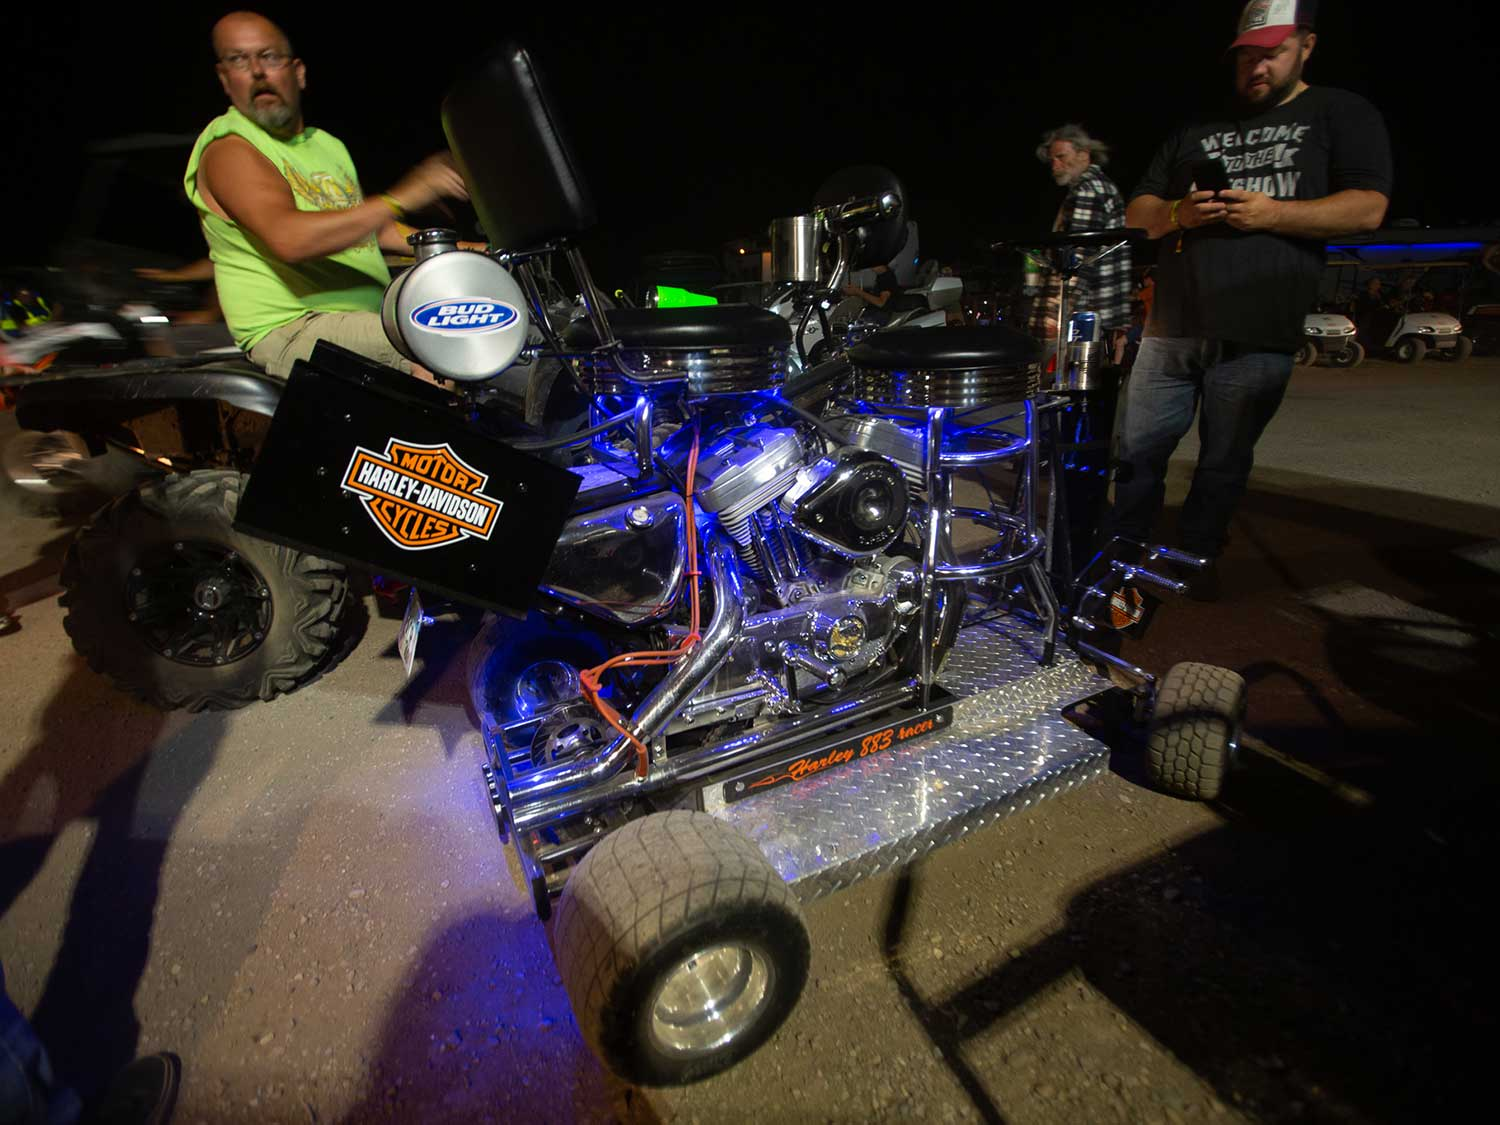 A two-person barstool kart powered by a Sportster 883 engine